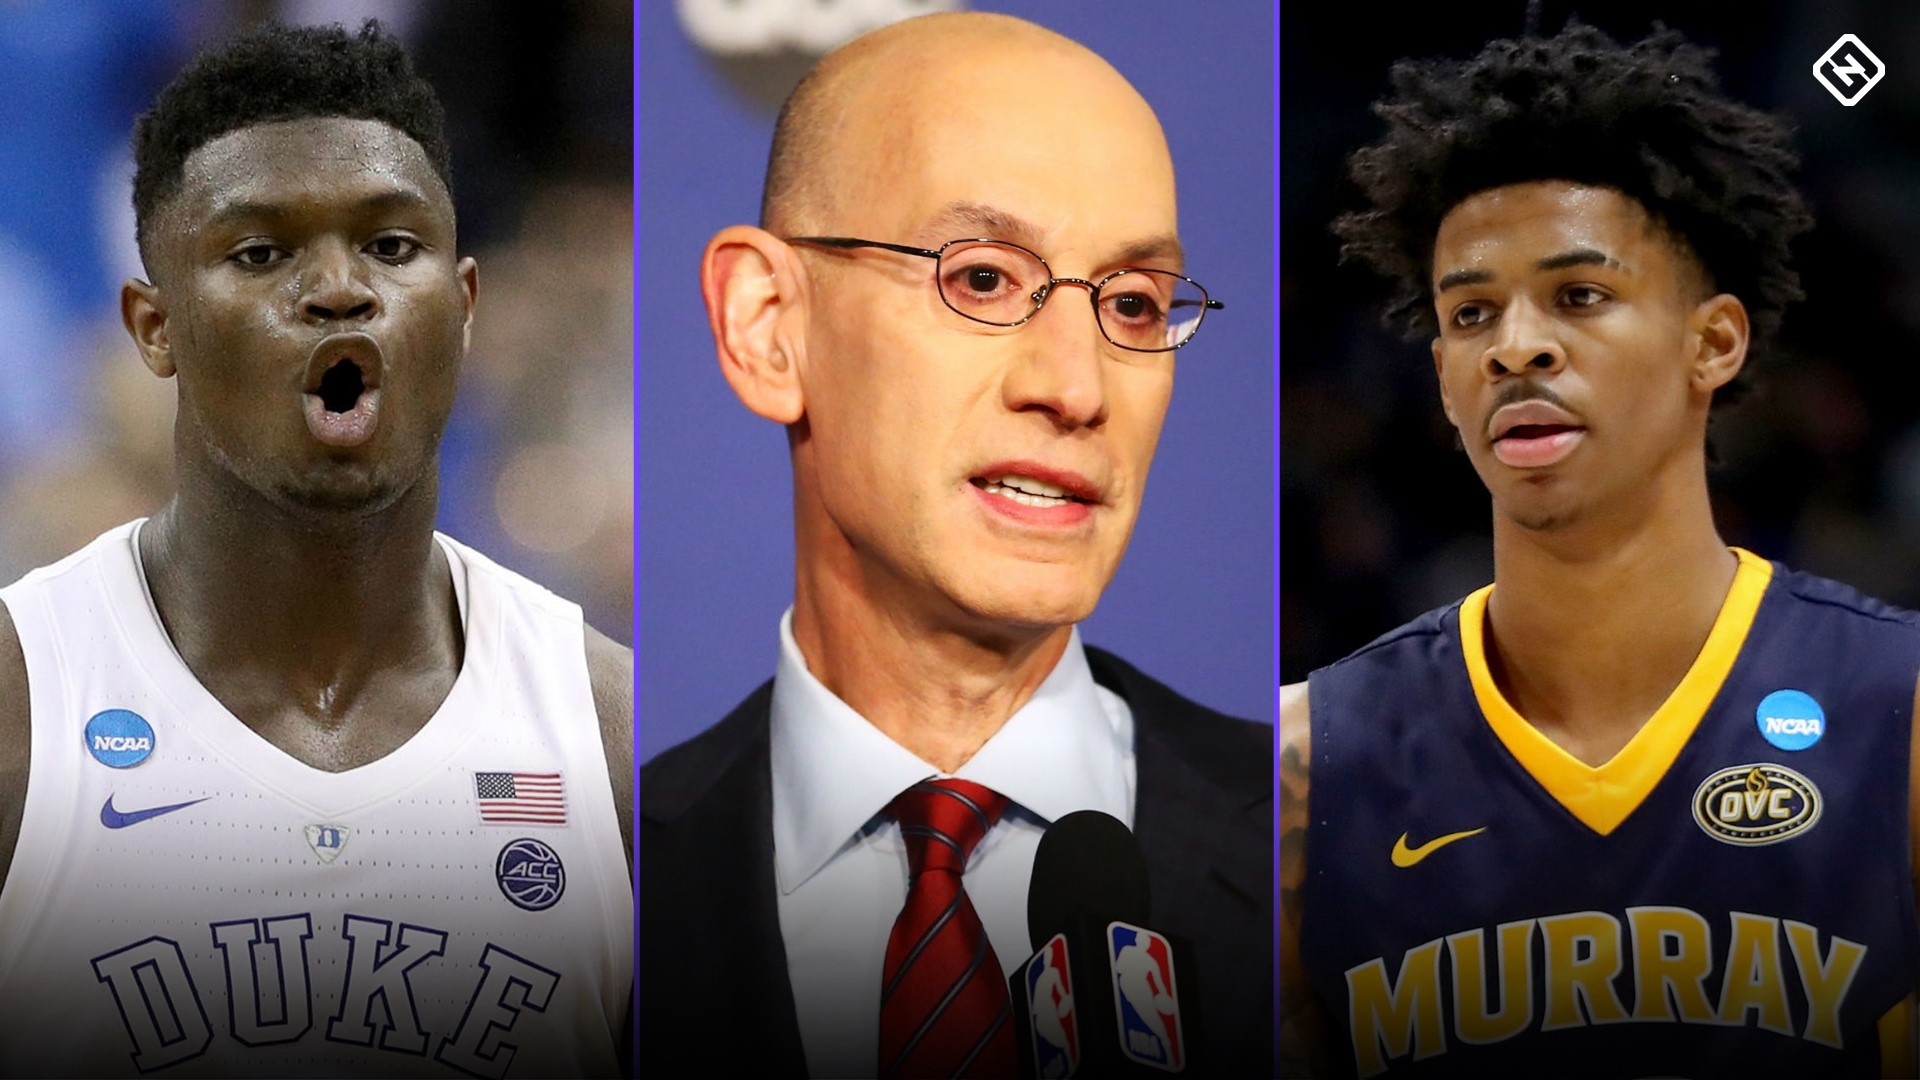 nba draft picks 2019 complete list of results for rounds